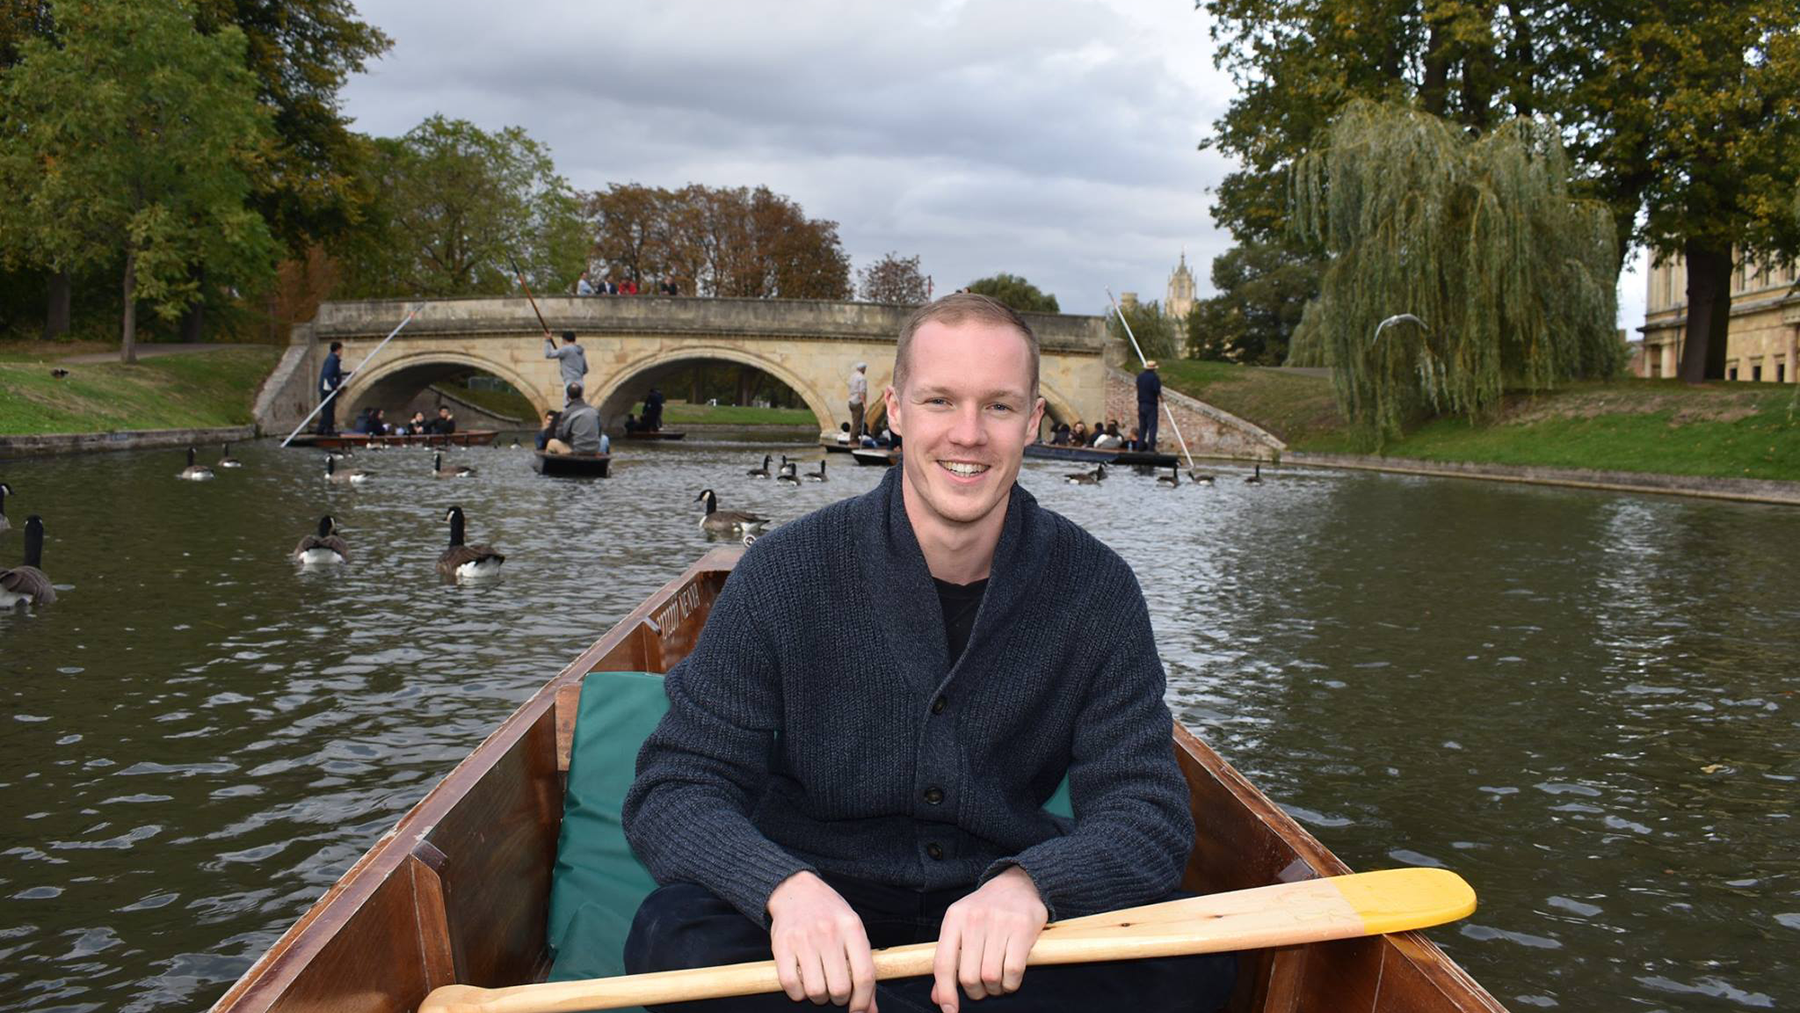 Adam, Wellcome technician, in a boat on the weekend